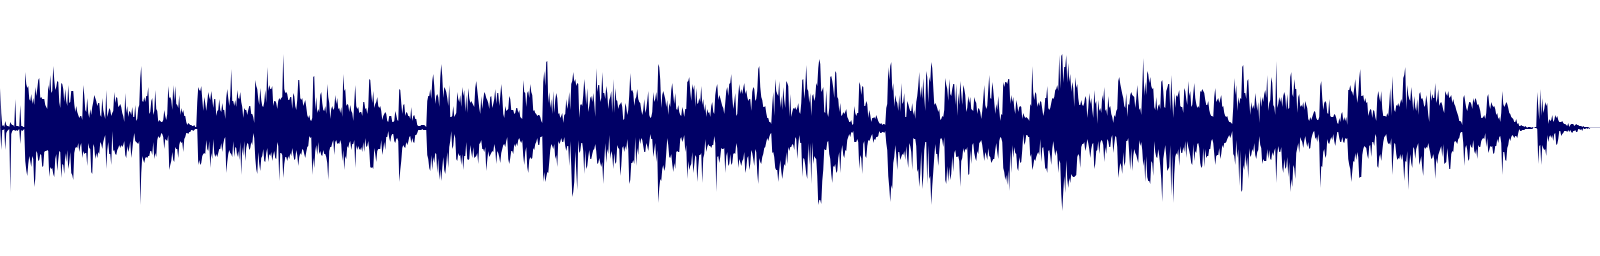 waveform of track #145729